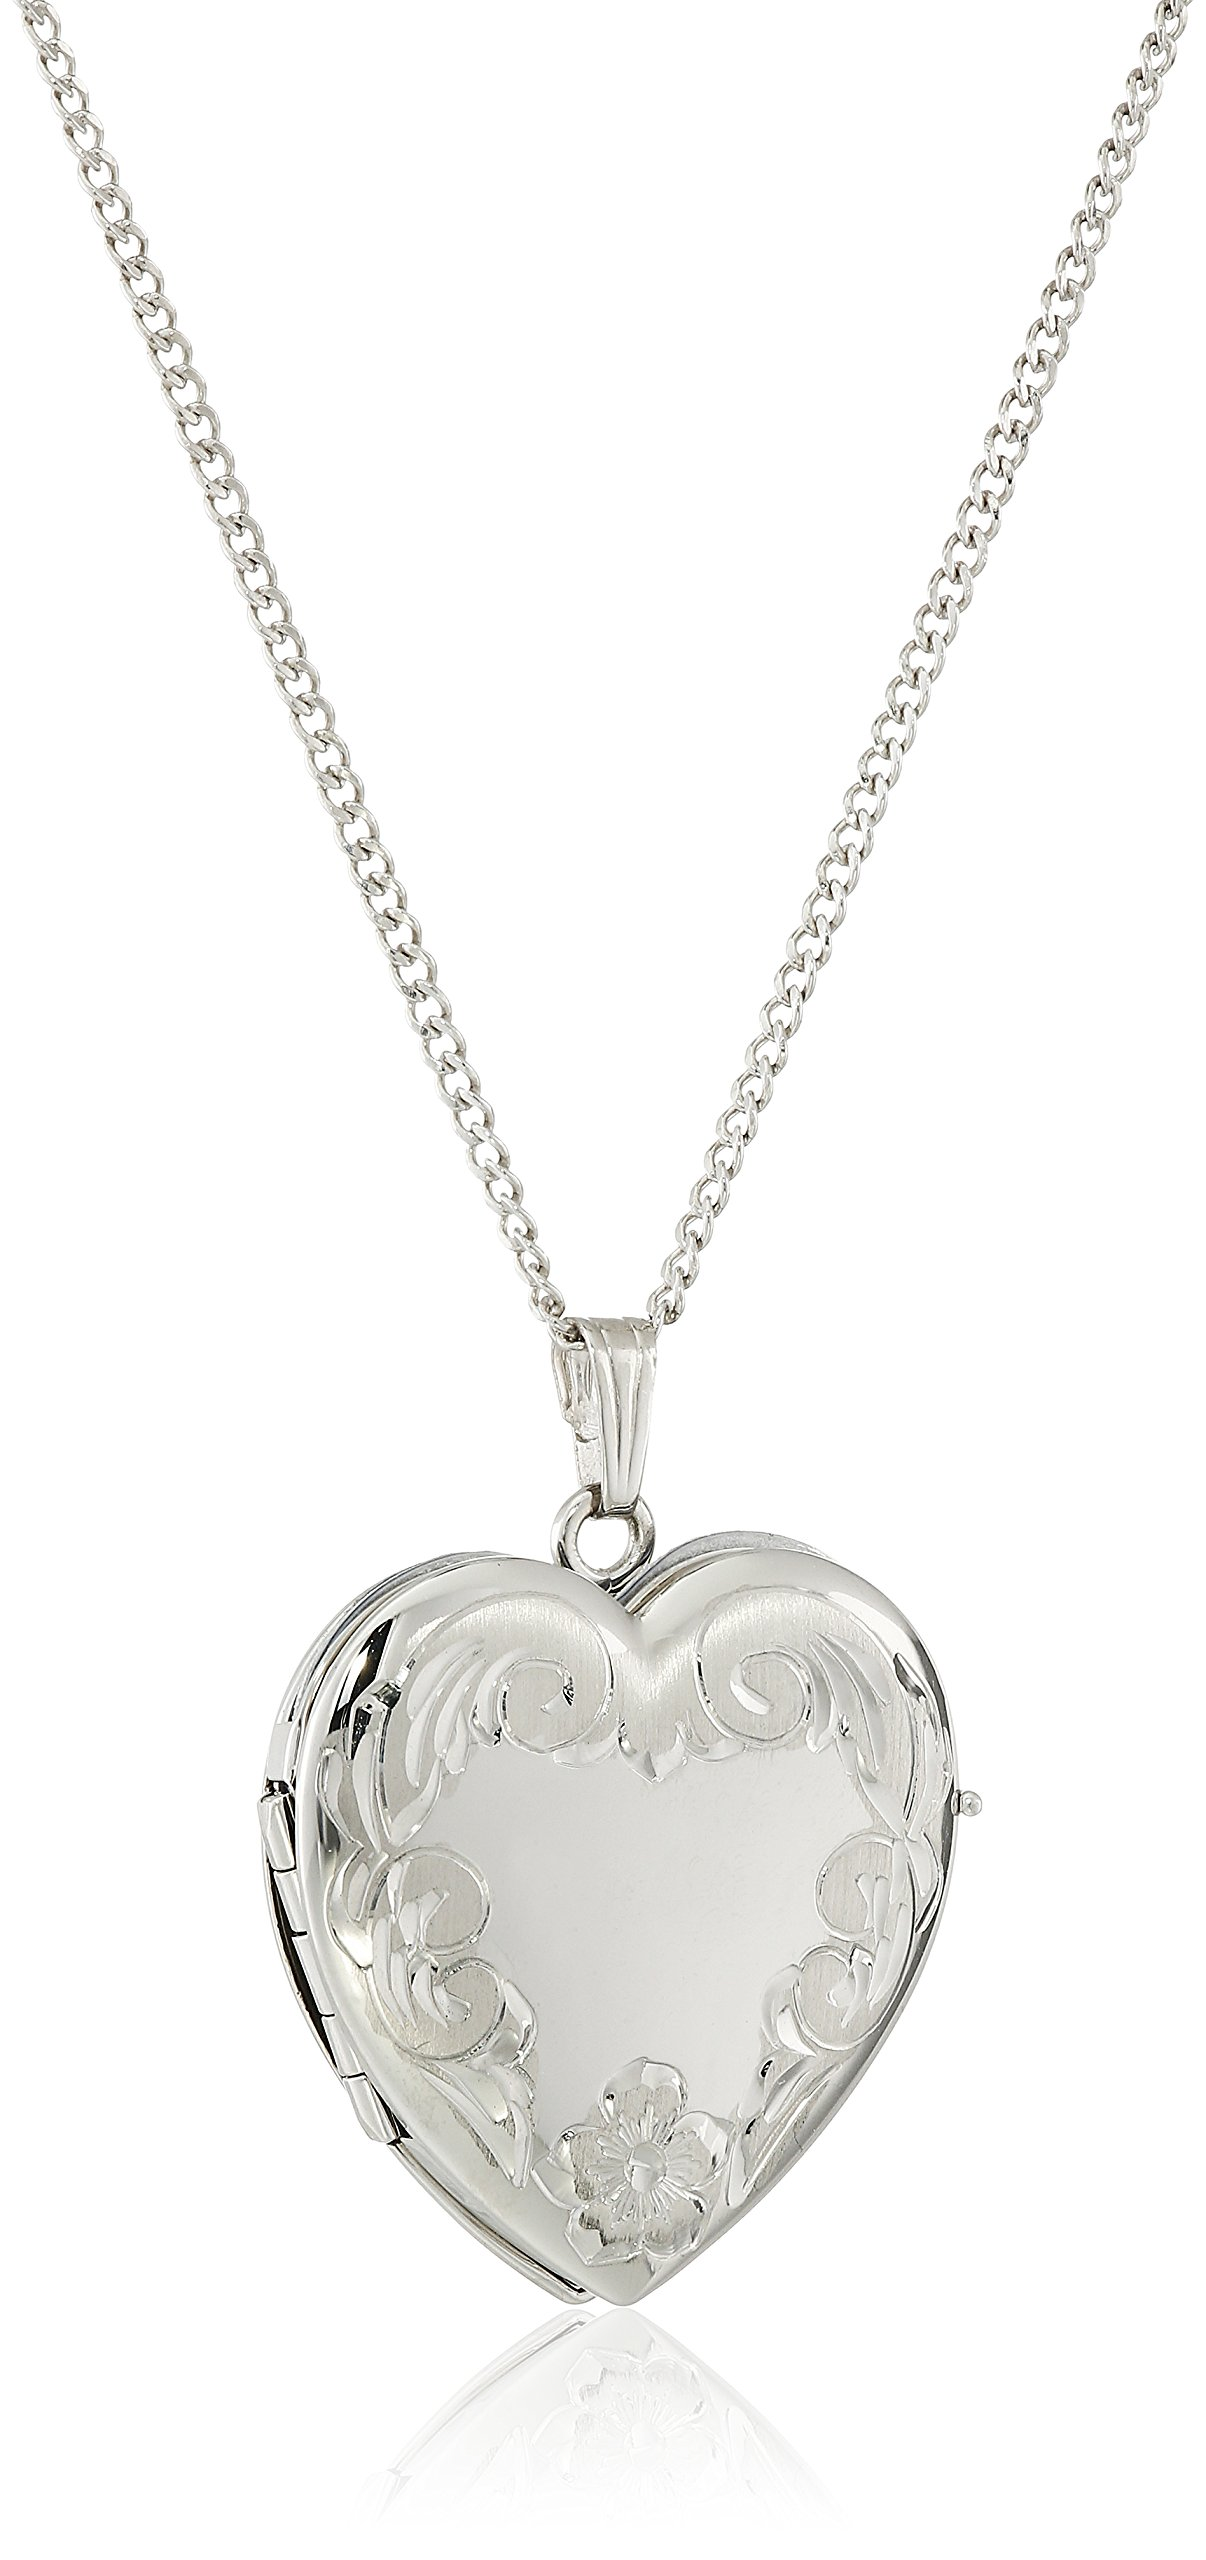 Sterling Silver Engraved Four-Picture Heart Locket Necklace, 20'' by Amazon Collection